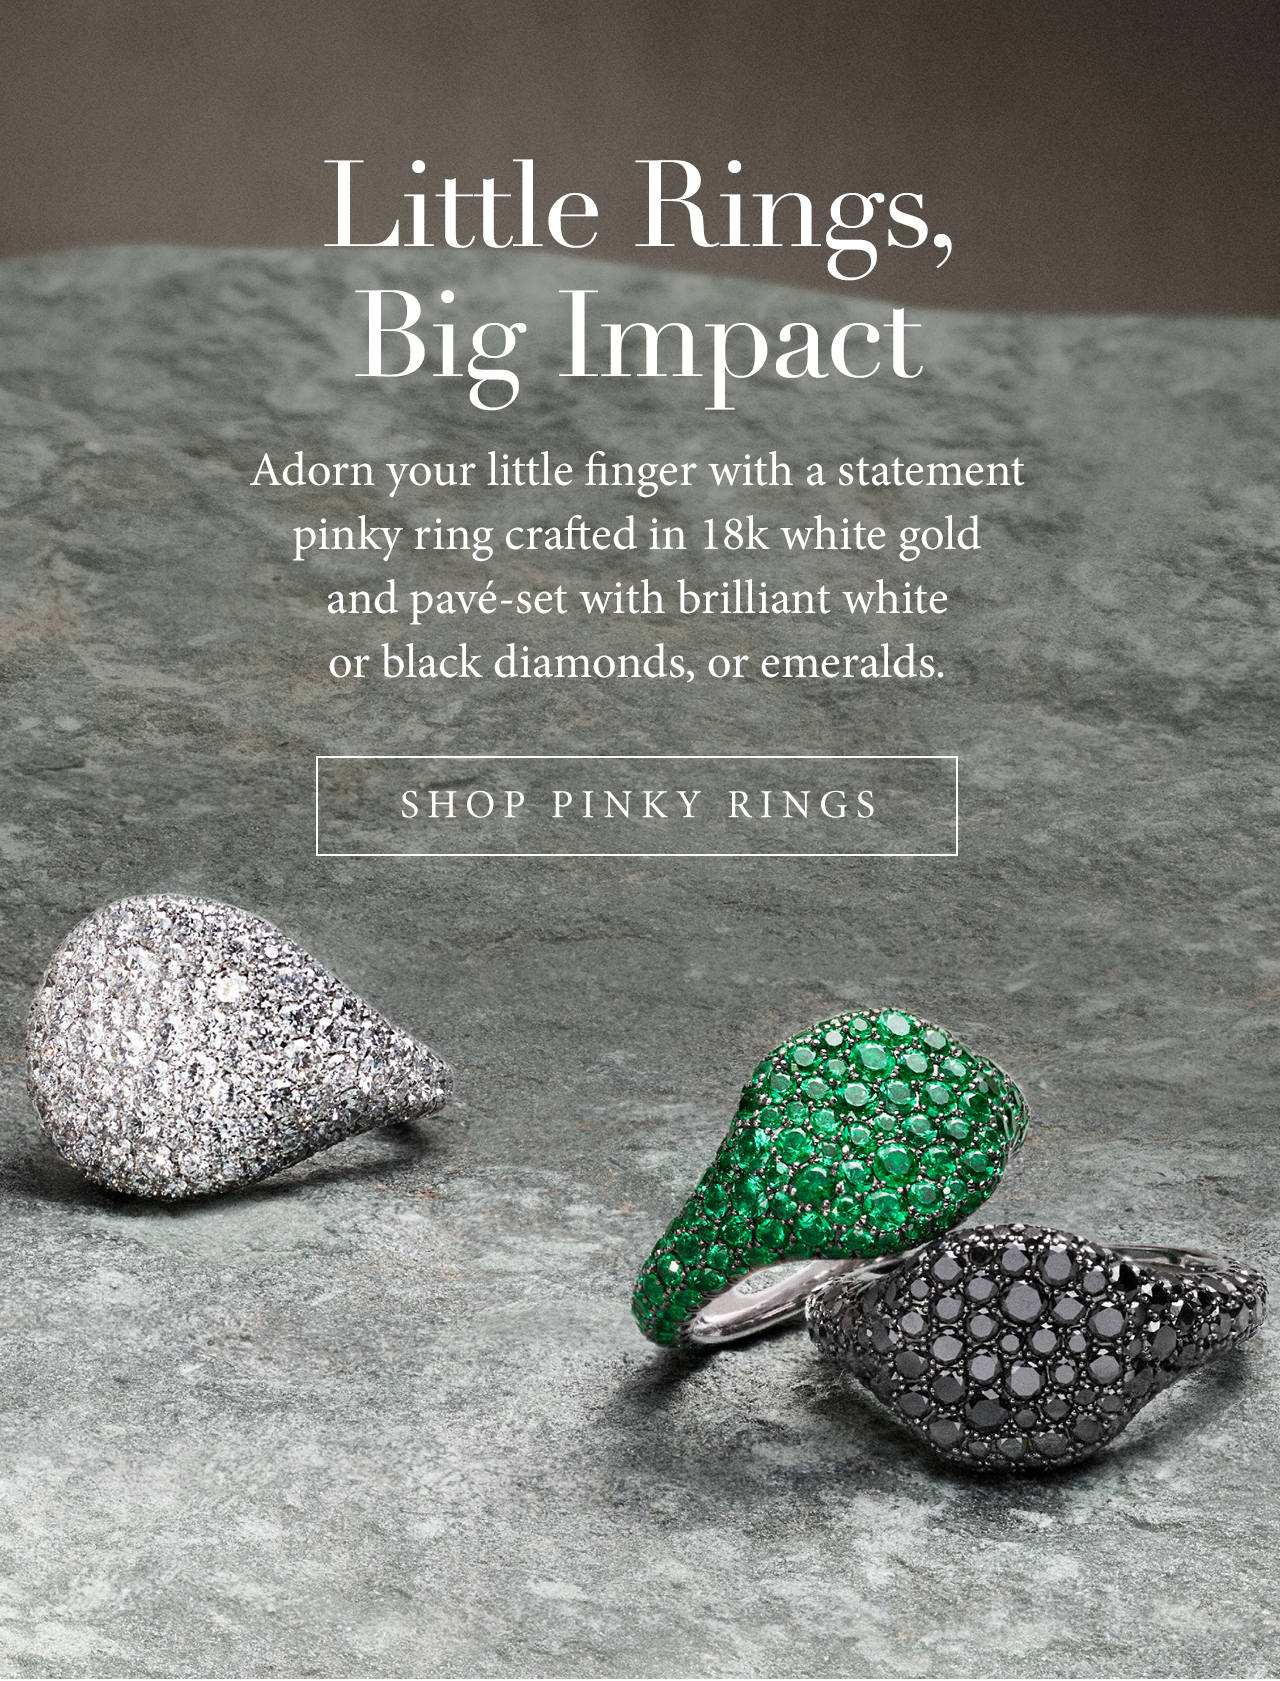 Shop Pinky Rings